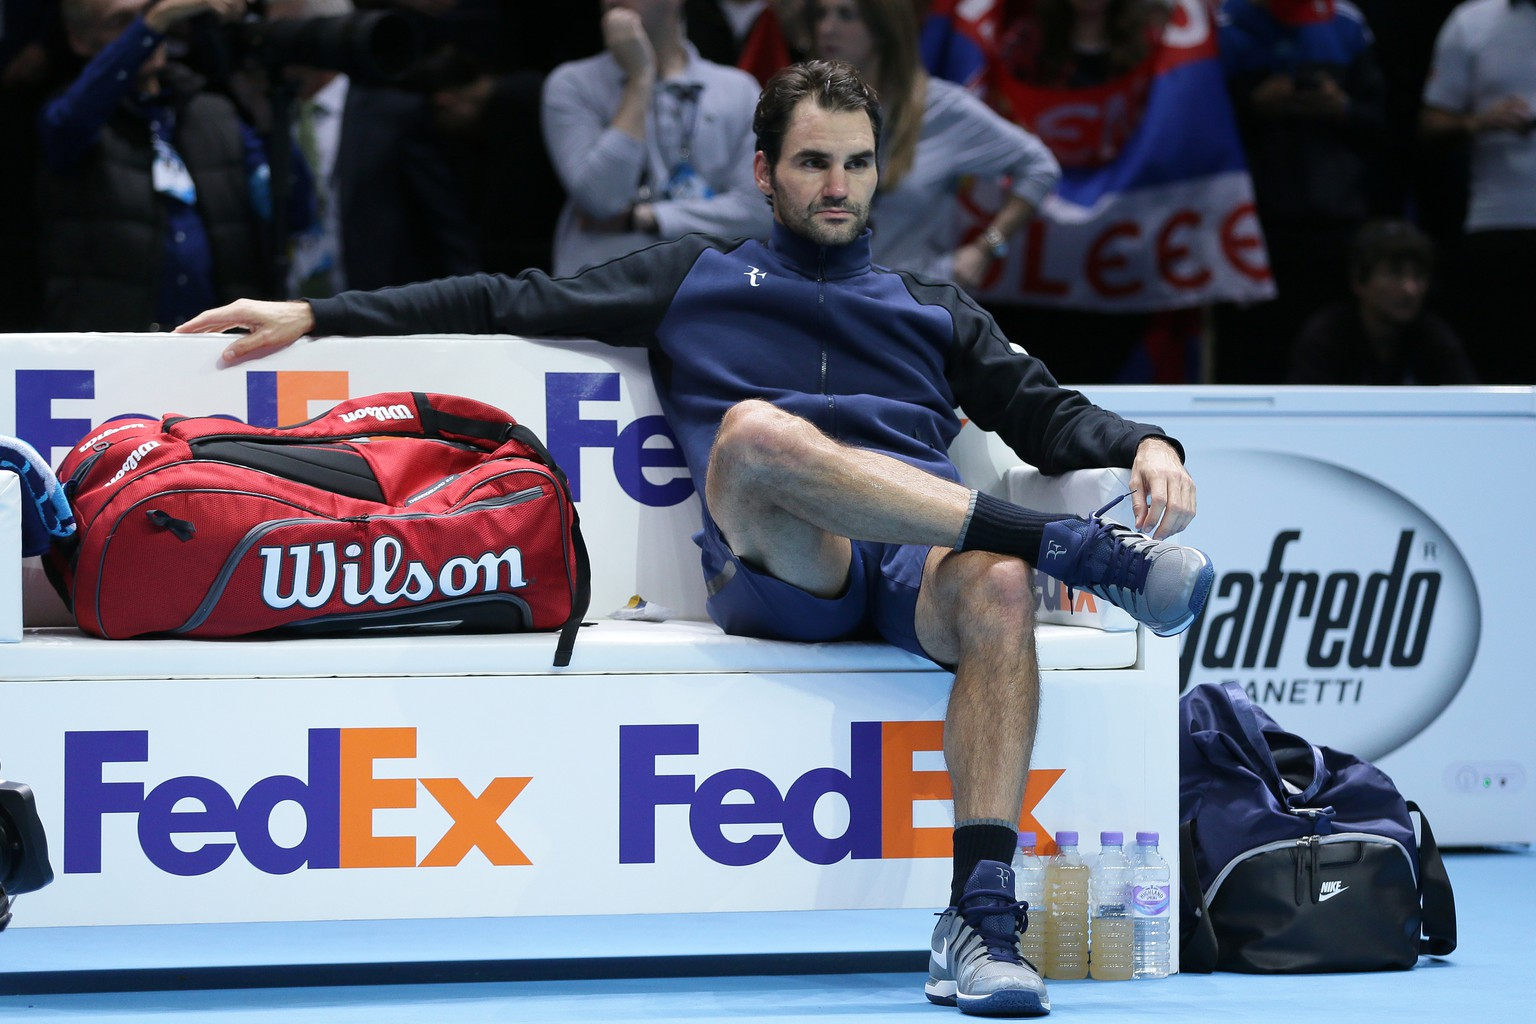 Roger Federer of Switzerland waits for the trophy ceremony after losing to Novak Djokovic of Serbia in their ATP World Tour Finals final tennis match at the O2 Arena in London, Sunday Nov. 22, 2015. (AP Photo/Tim Ireland)